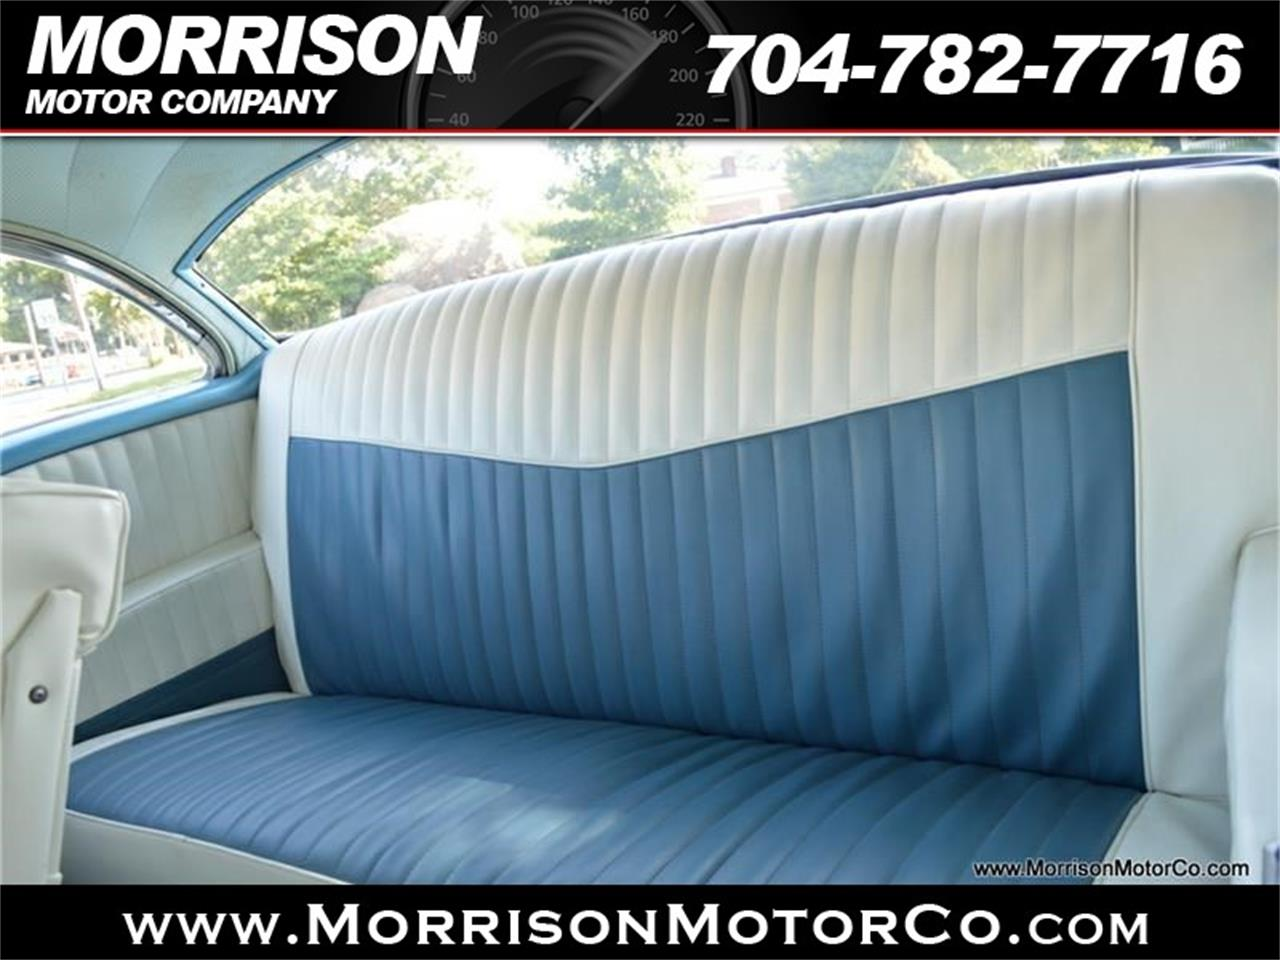 Large Picture of '56 Buick Special Riviera located in Concord North Carolina Offered by Morrison Motor Company - M8P8